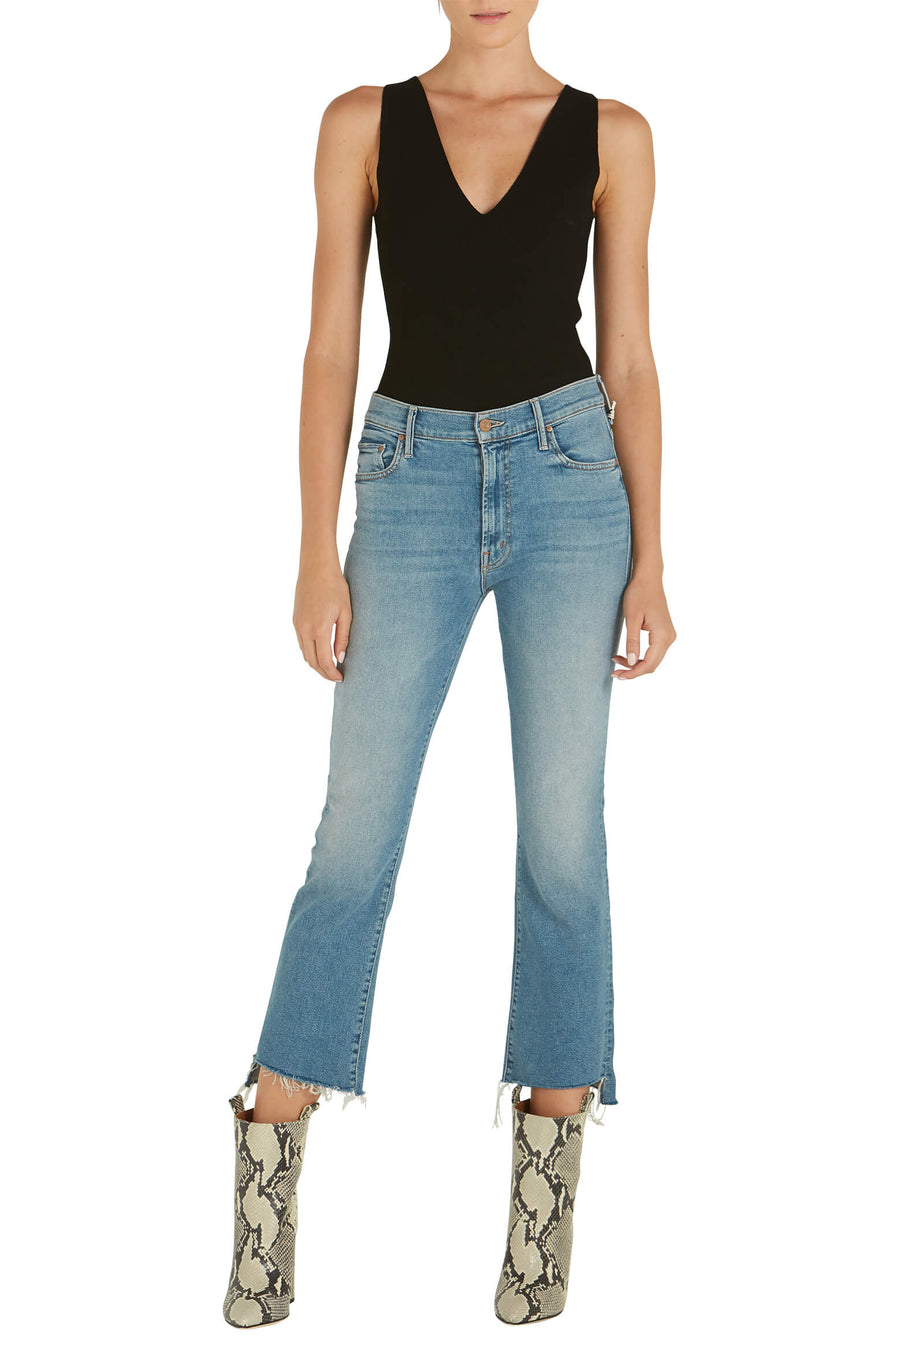 Mother Denim Insider Crop Step Fray Denim Jeans from The New Trend.